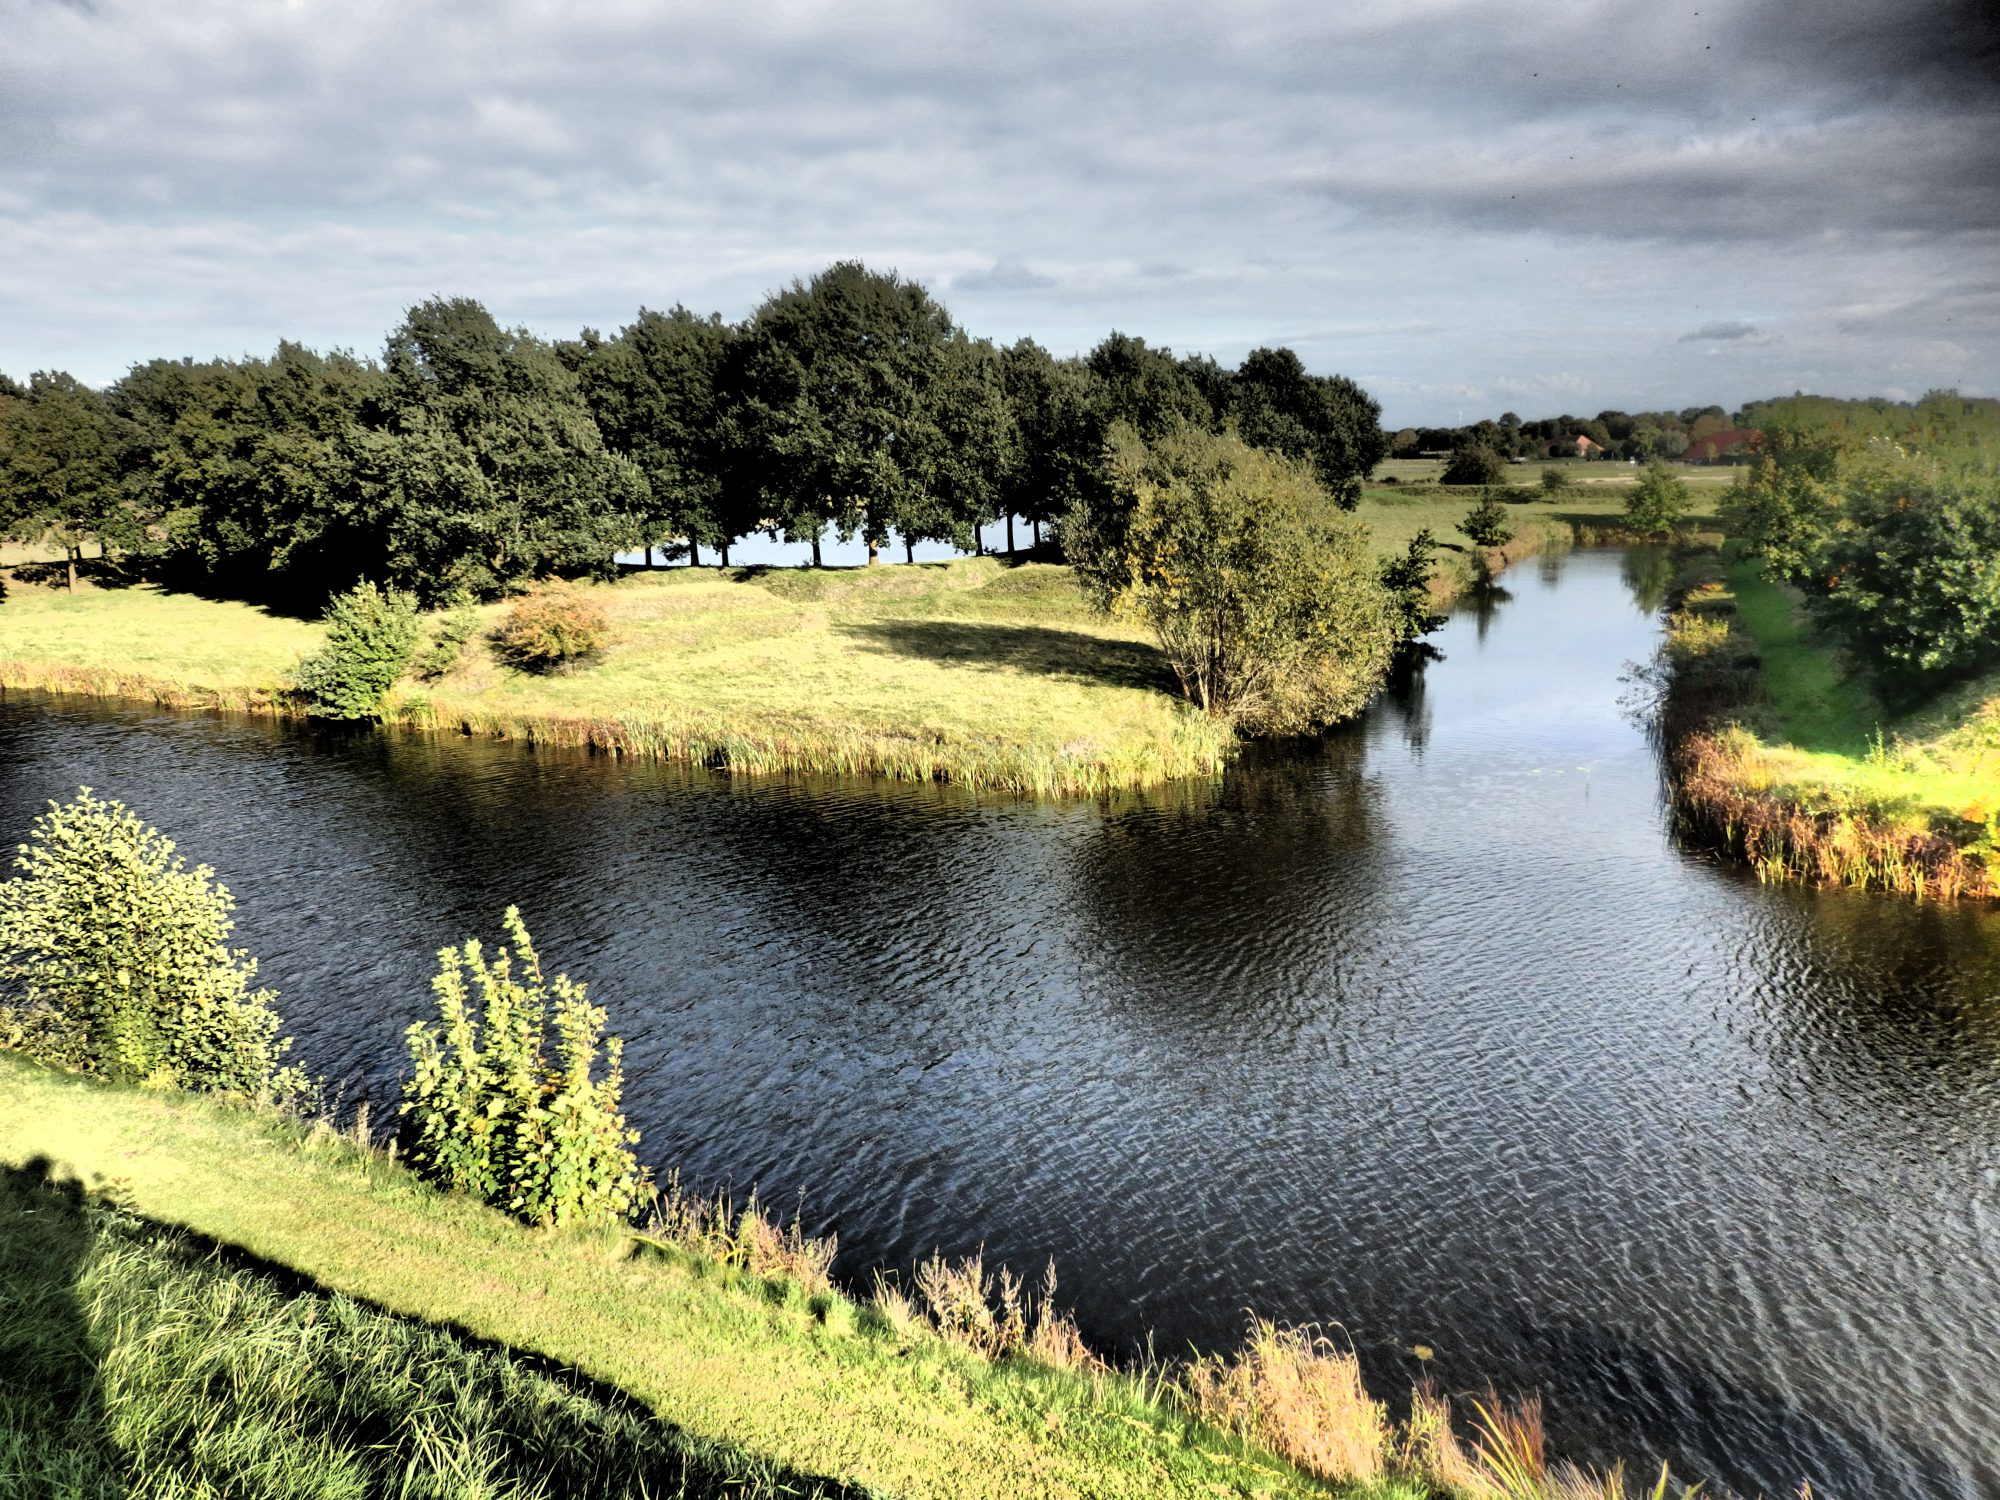 water channels and outer earthworks as seen from the inner walls of Bourtange